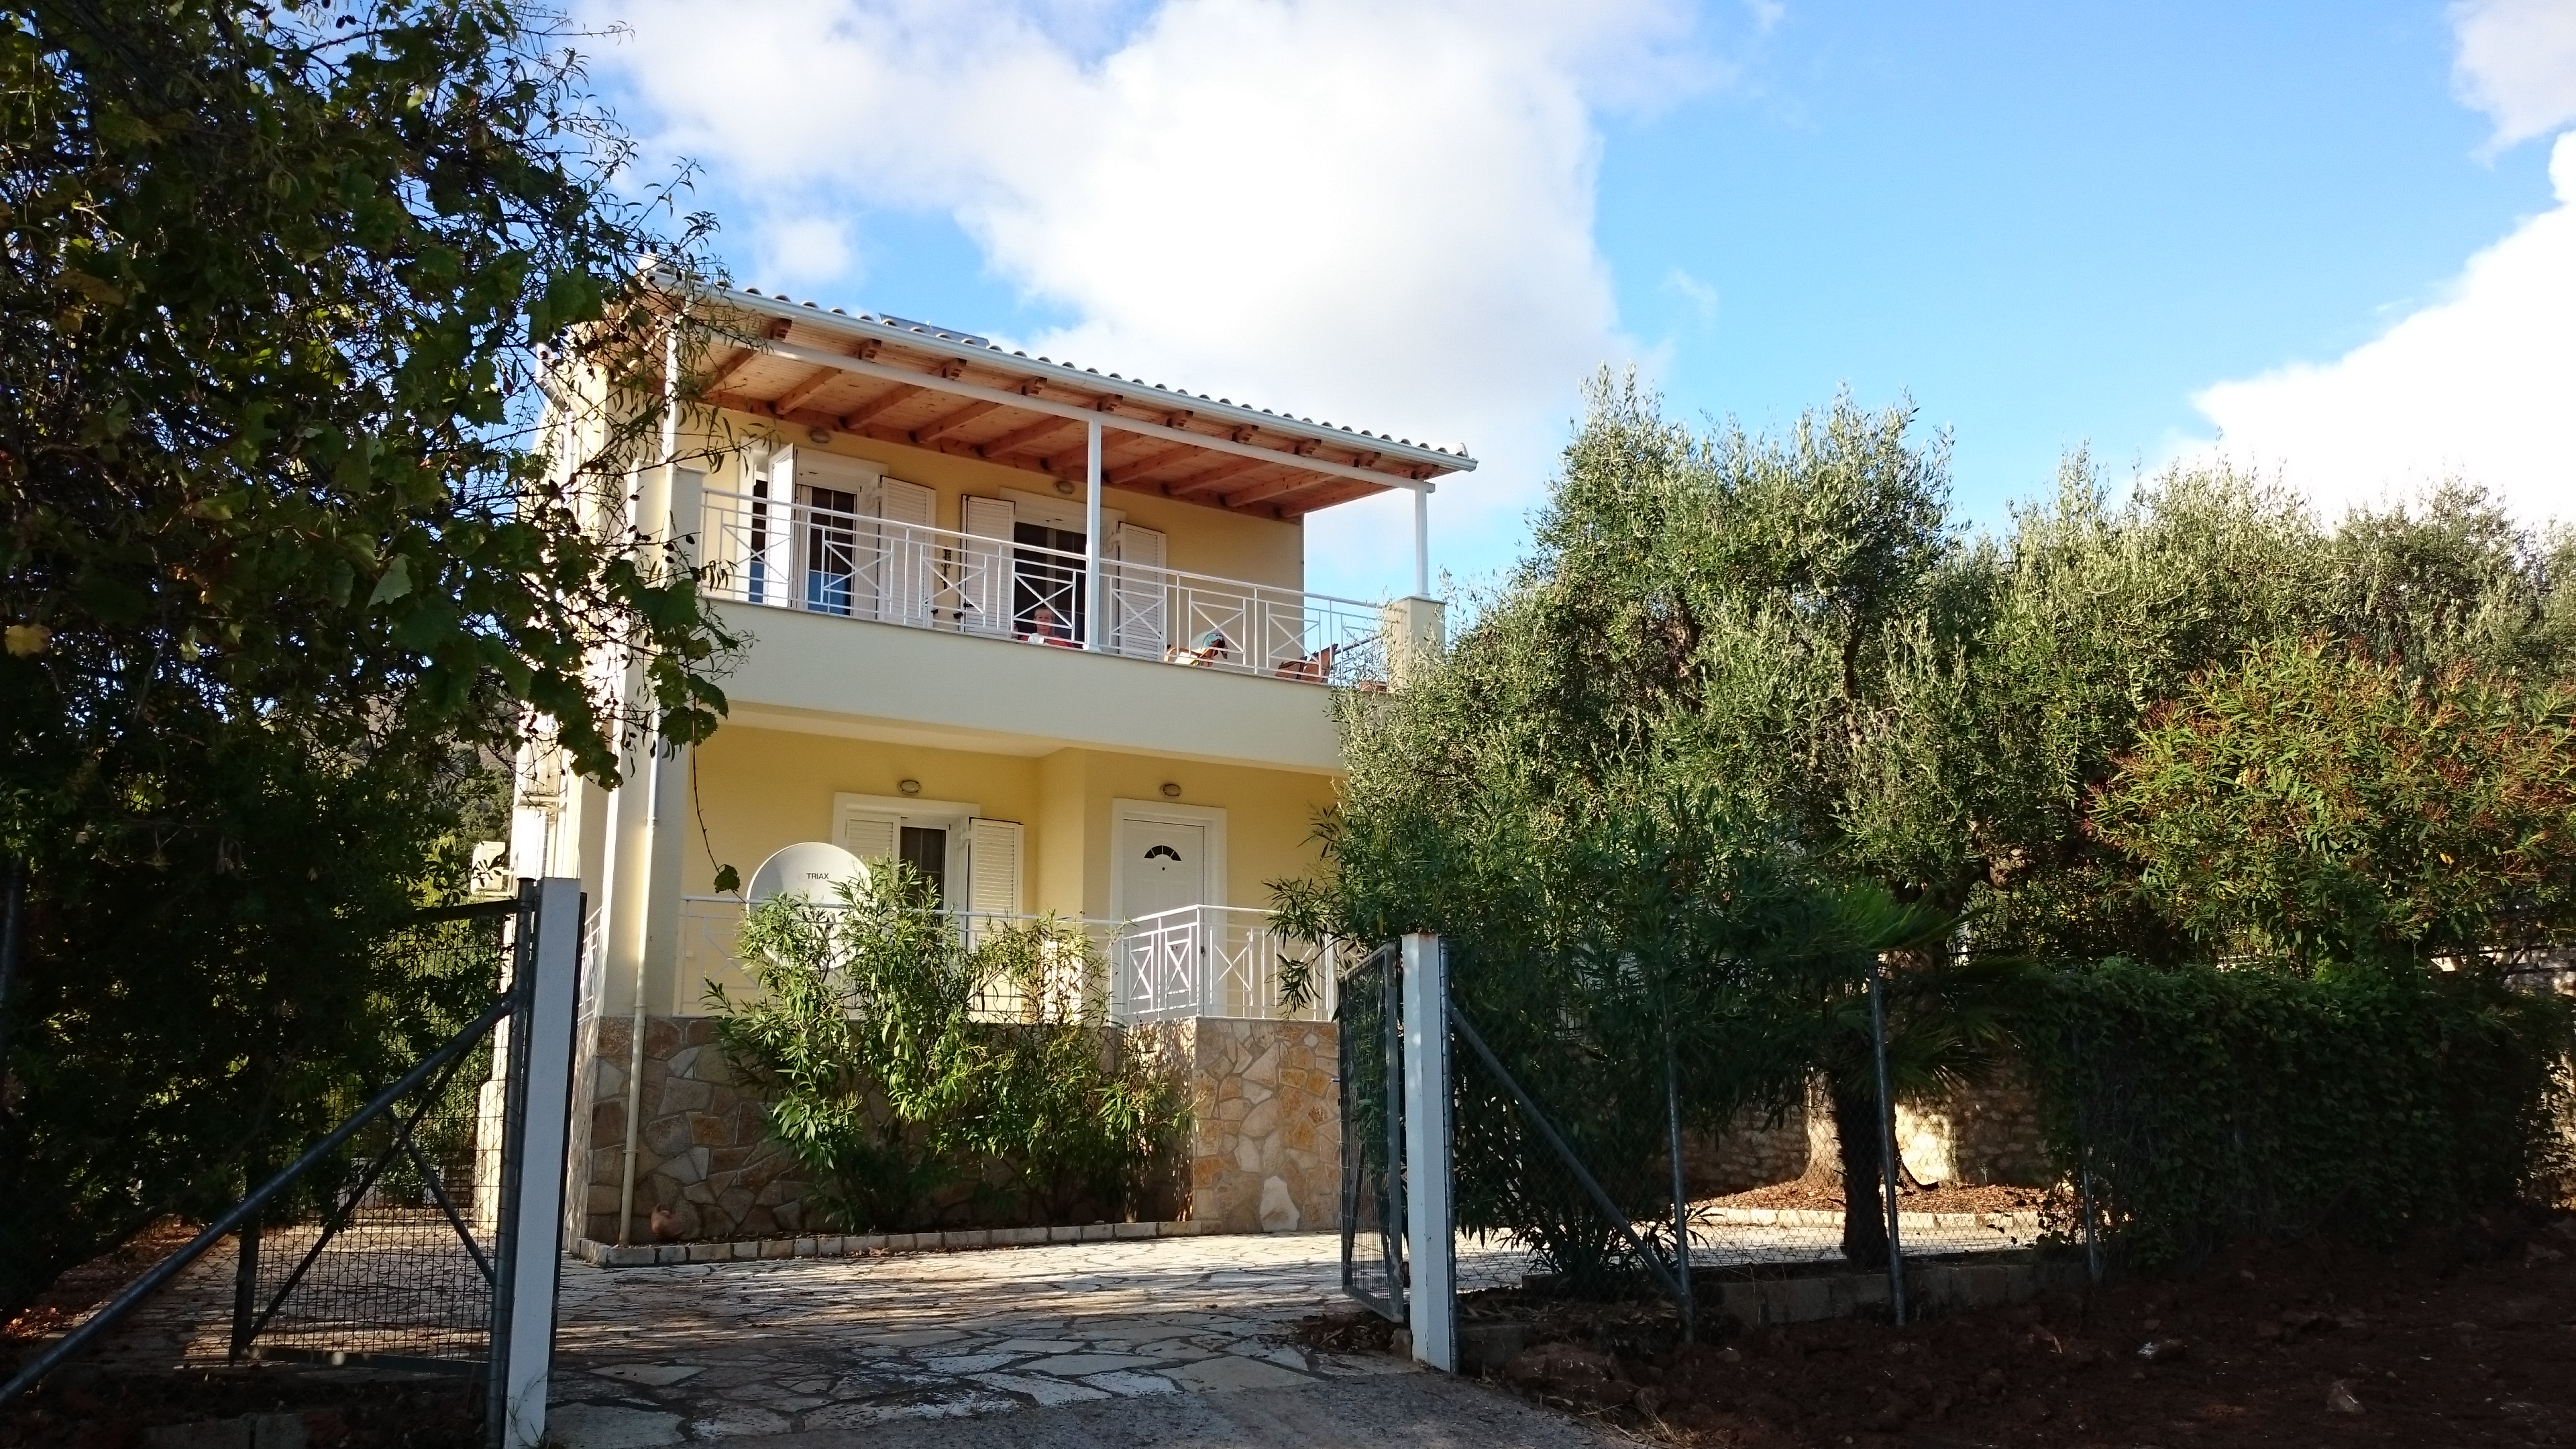 For sale 95 m2 Detached house full equipment in Sivota 185.000 Euro.(102)